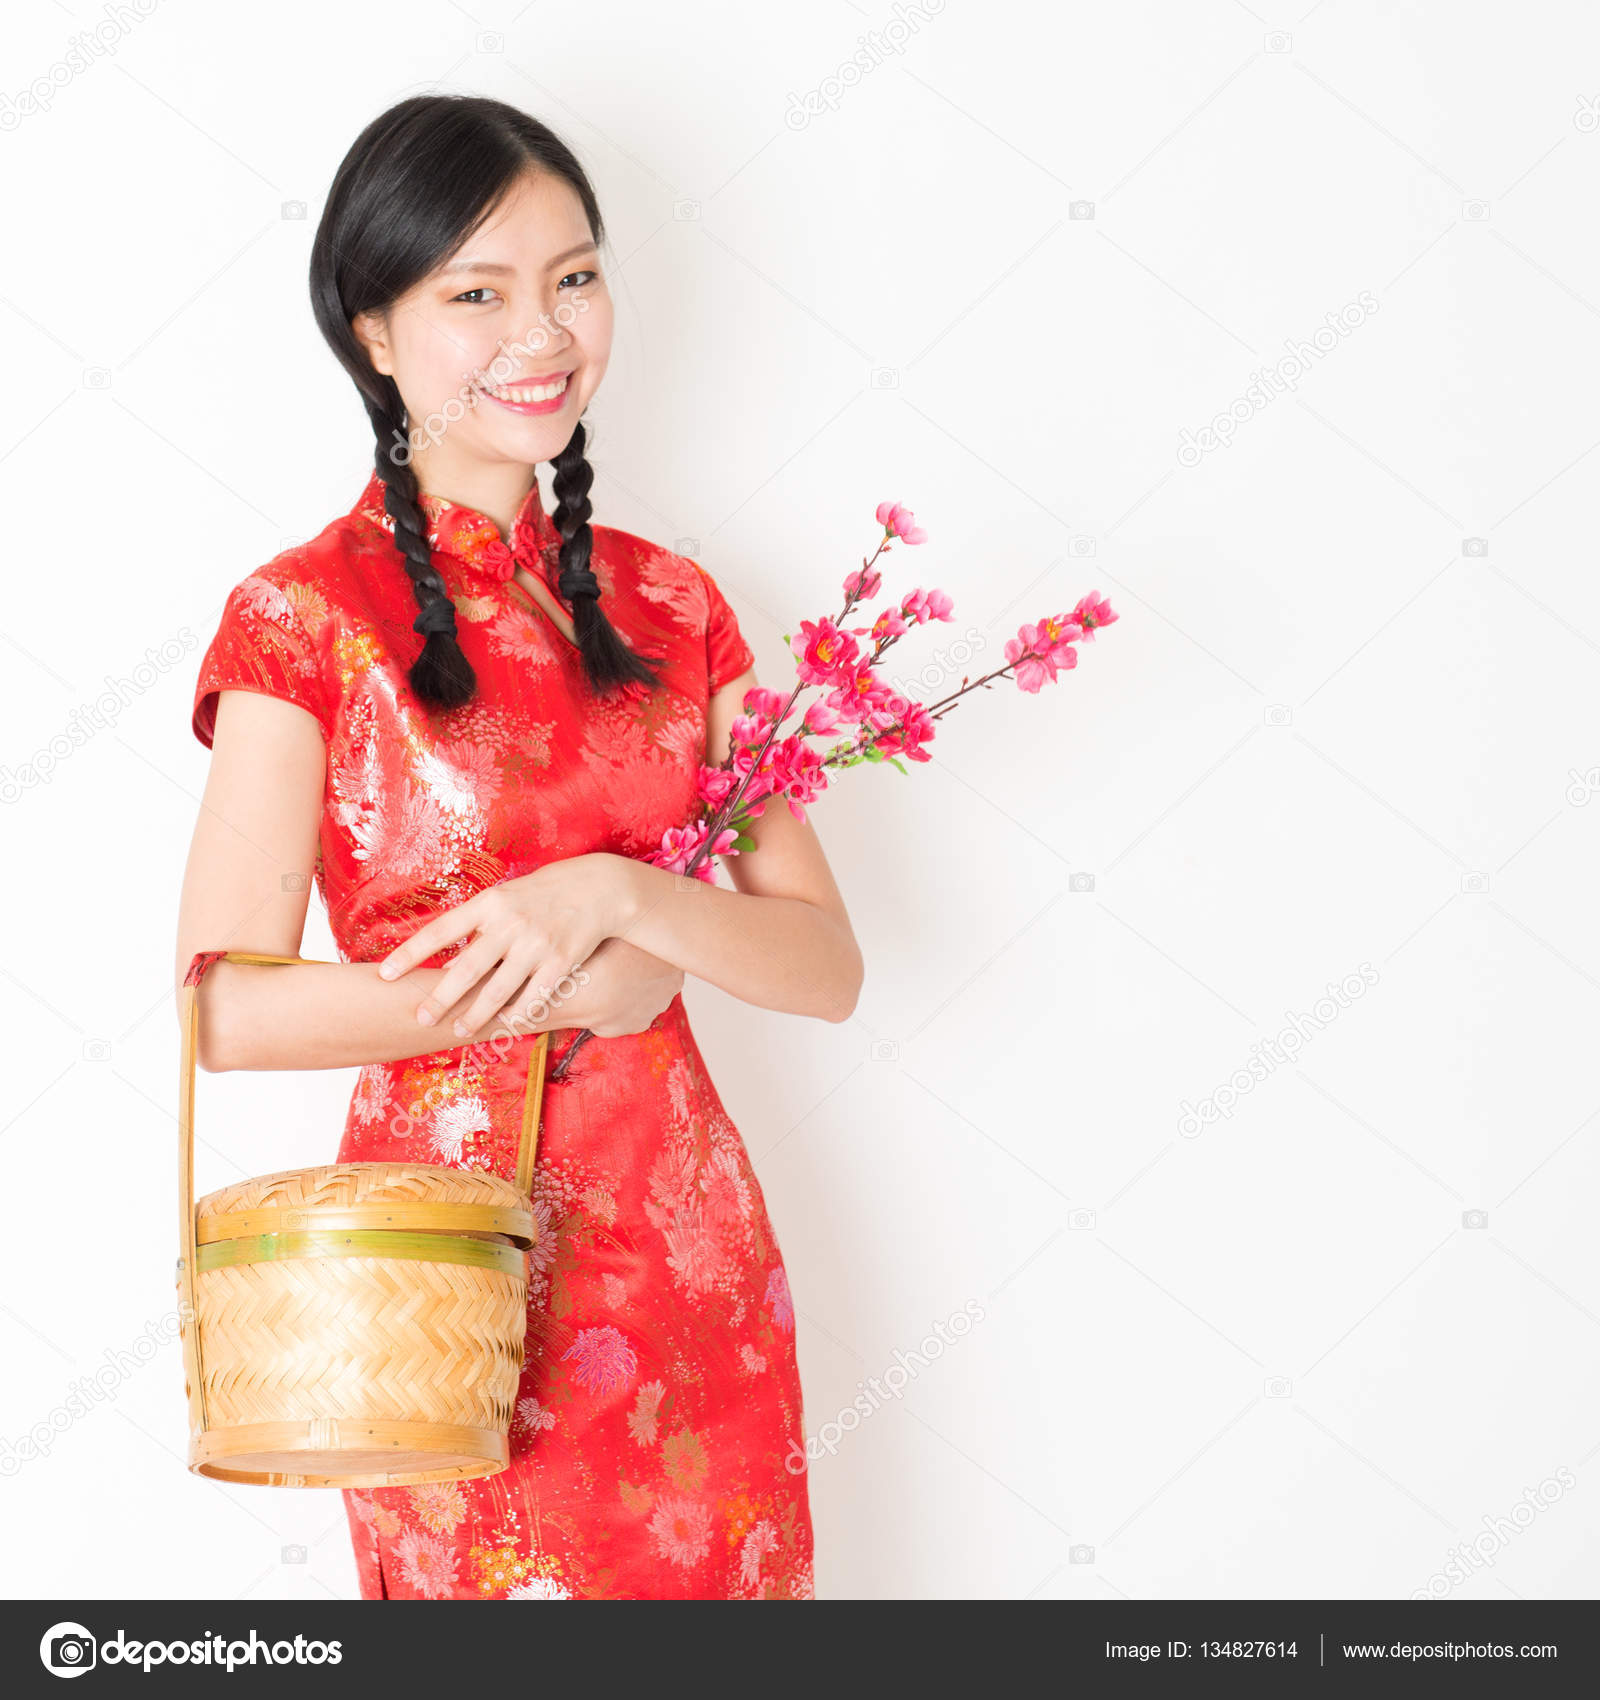 383349162 Young Asian woman in traditional cheongsam dress holding gift basket and  plum blossom smiling, celebrating Chinese Lunar New Year or spring festival,  ...